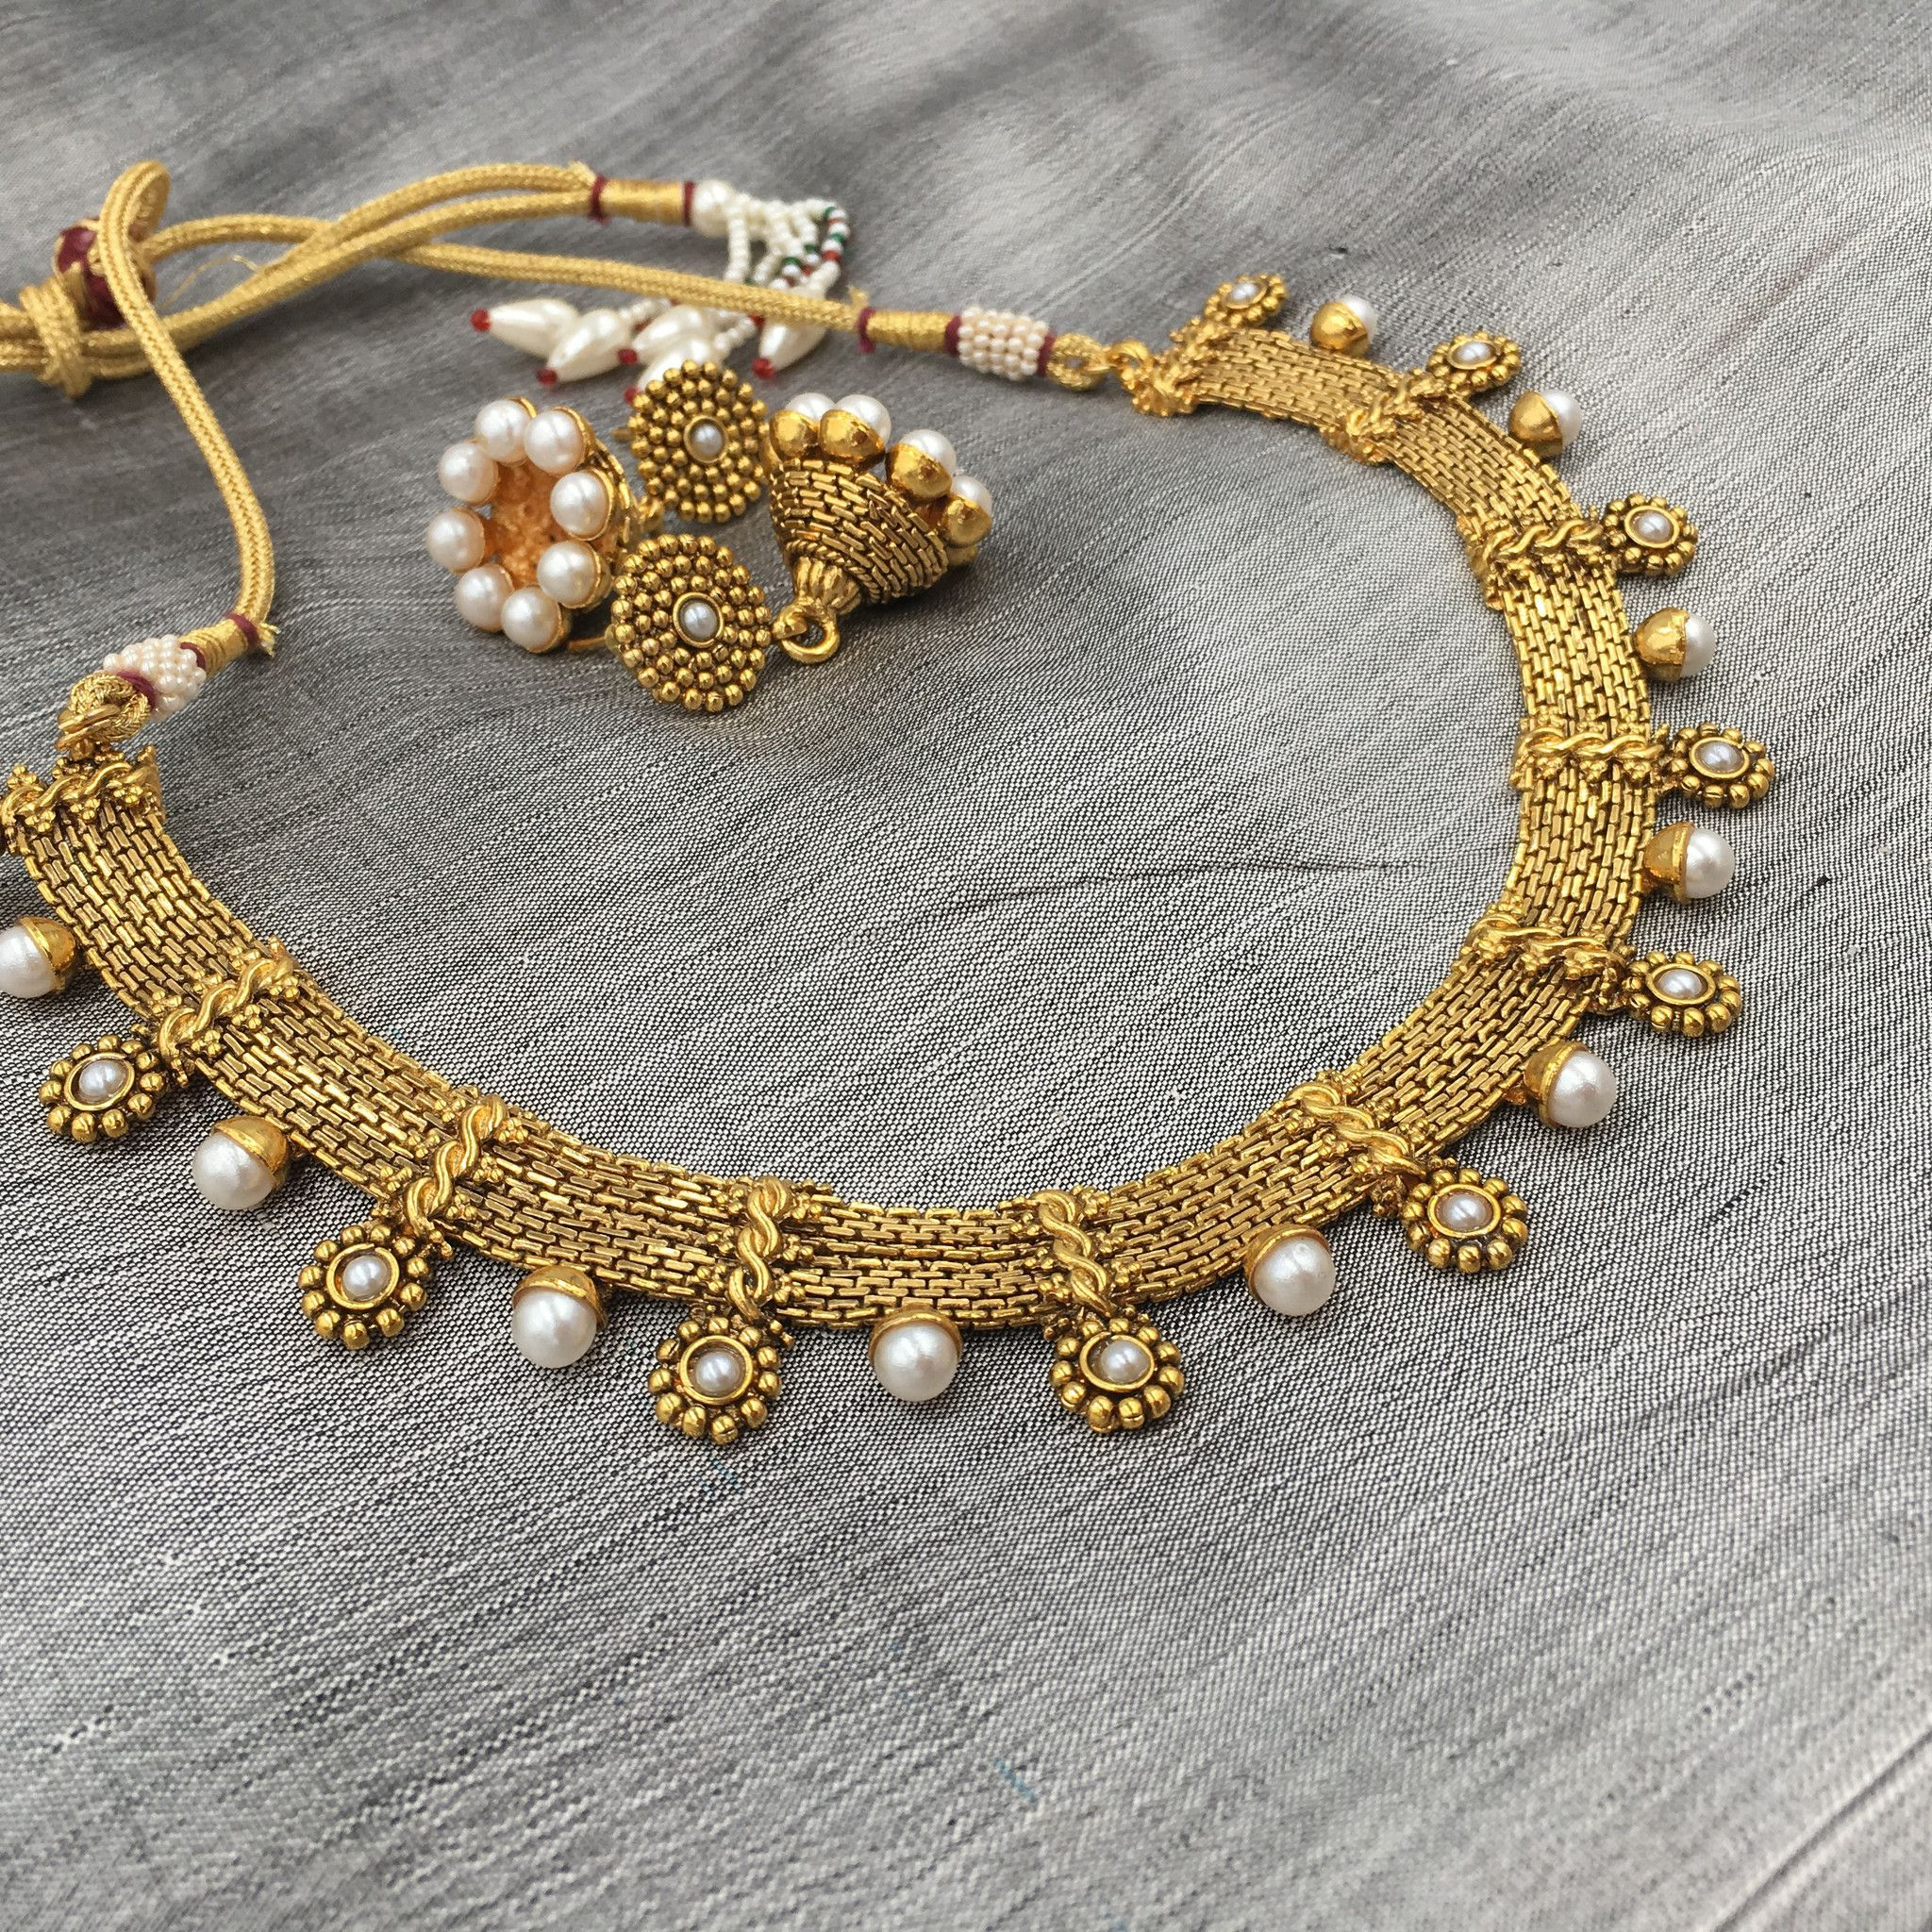 Golden fit necklace with moti and small flowers